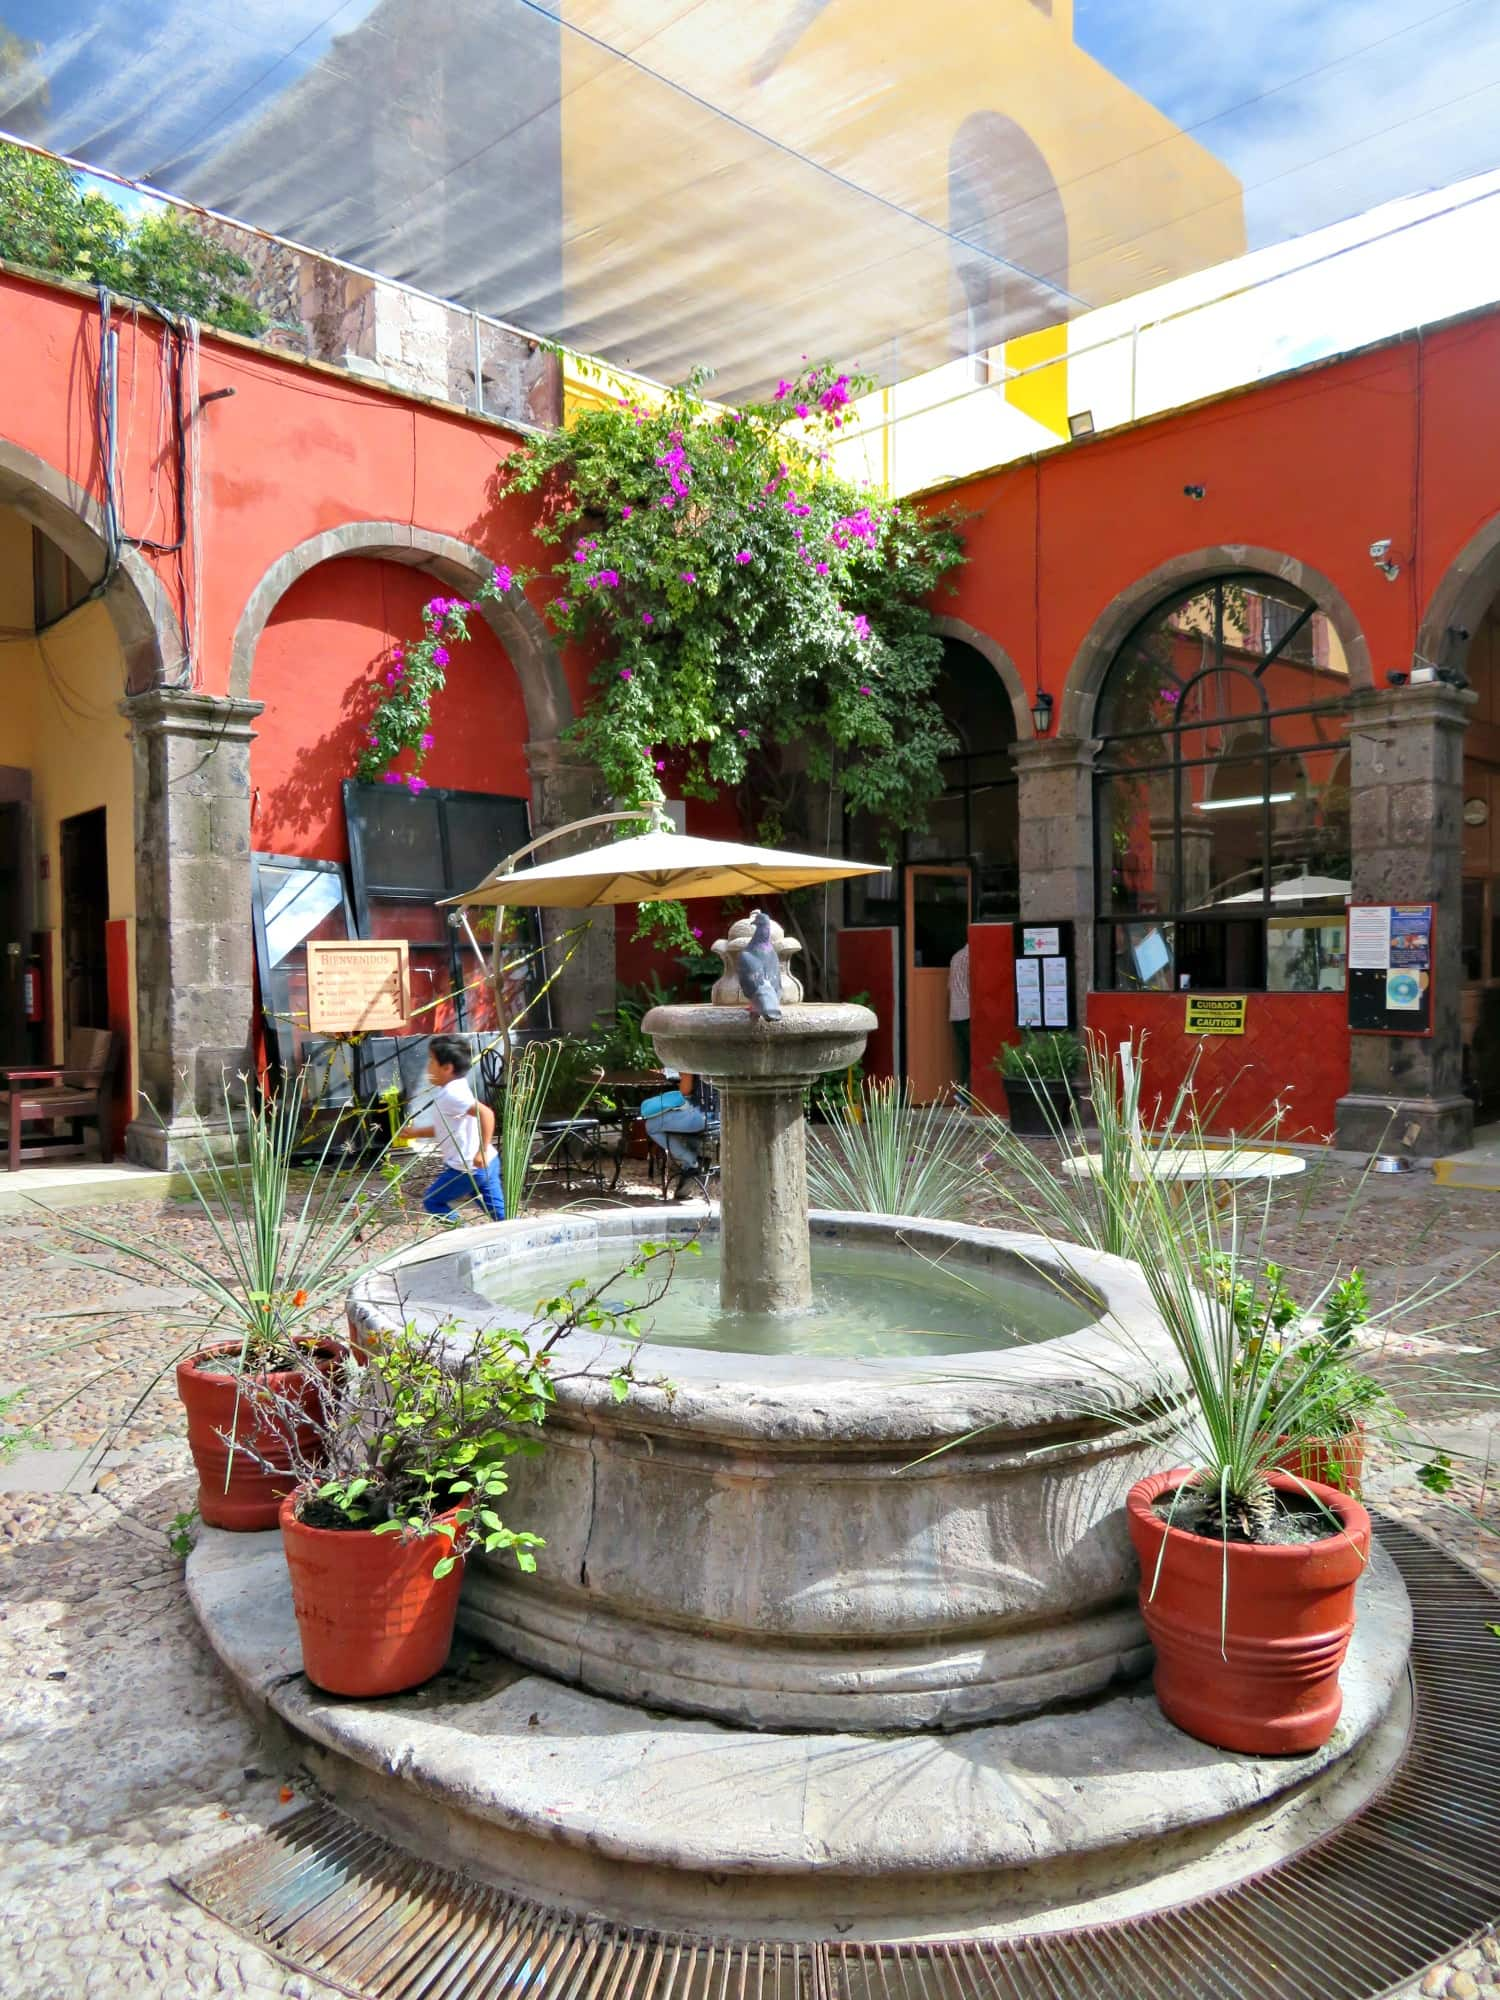 The pretty courtyard at Biblioteca de San Miguel de Allende with kids